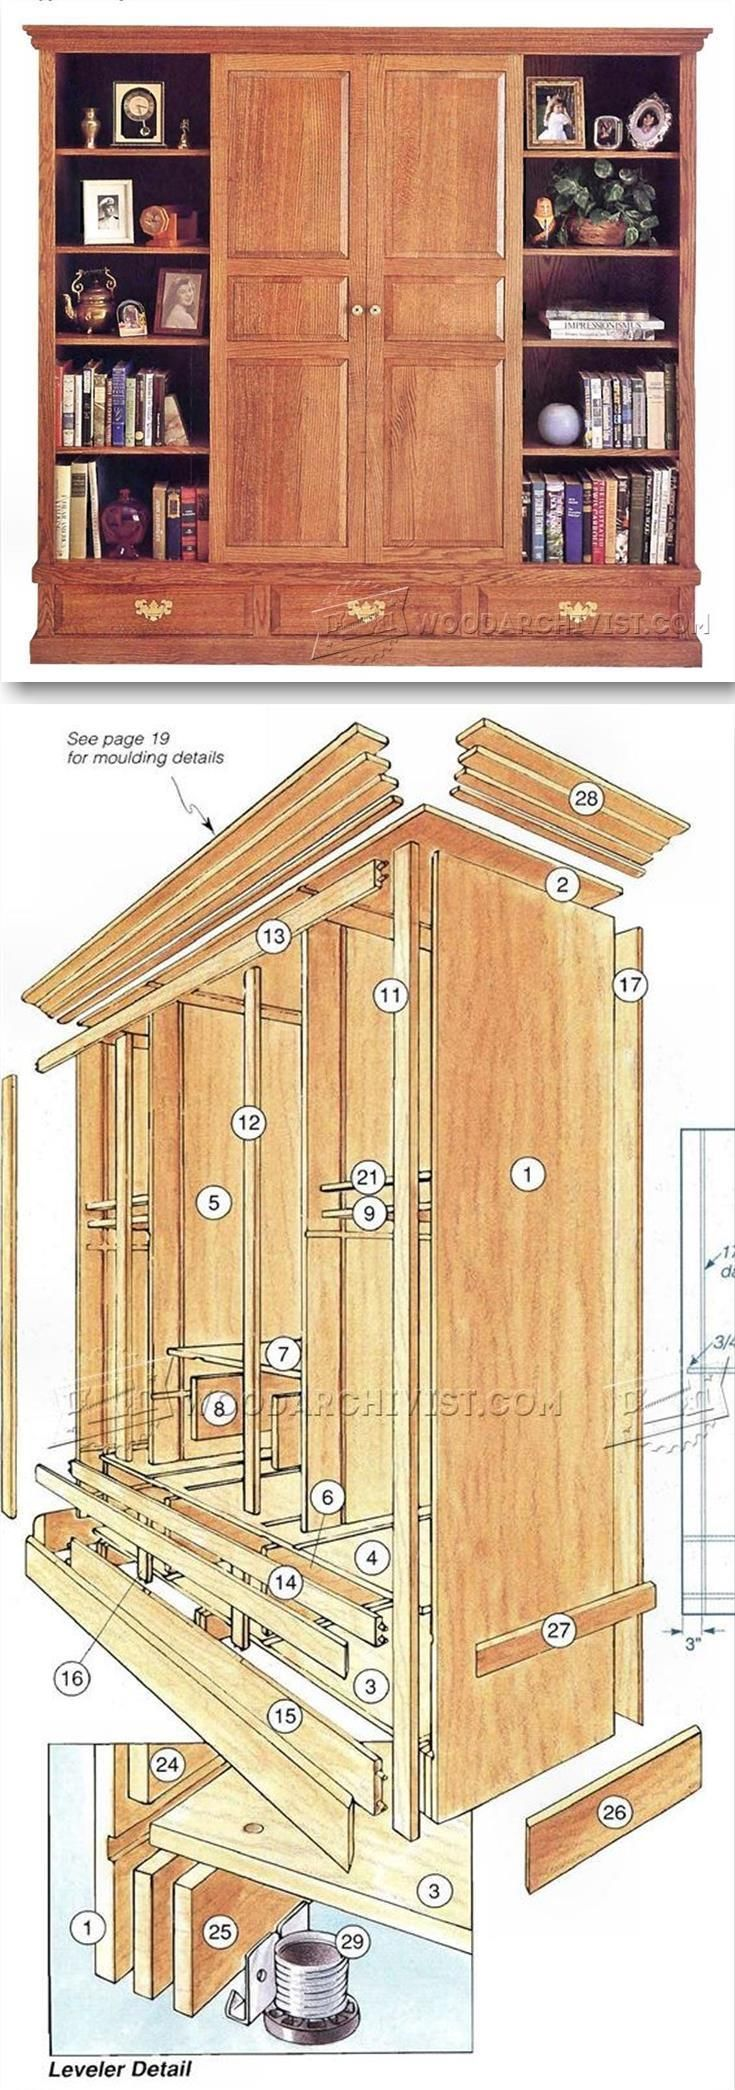 Entertainment Center Plans - Furniture Plans and Projects